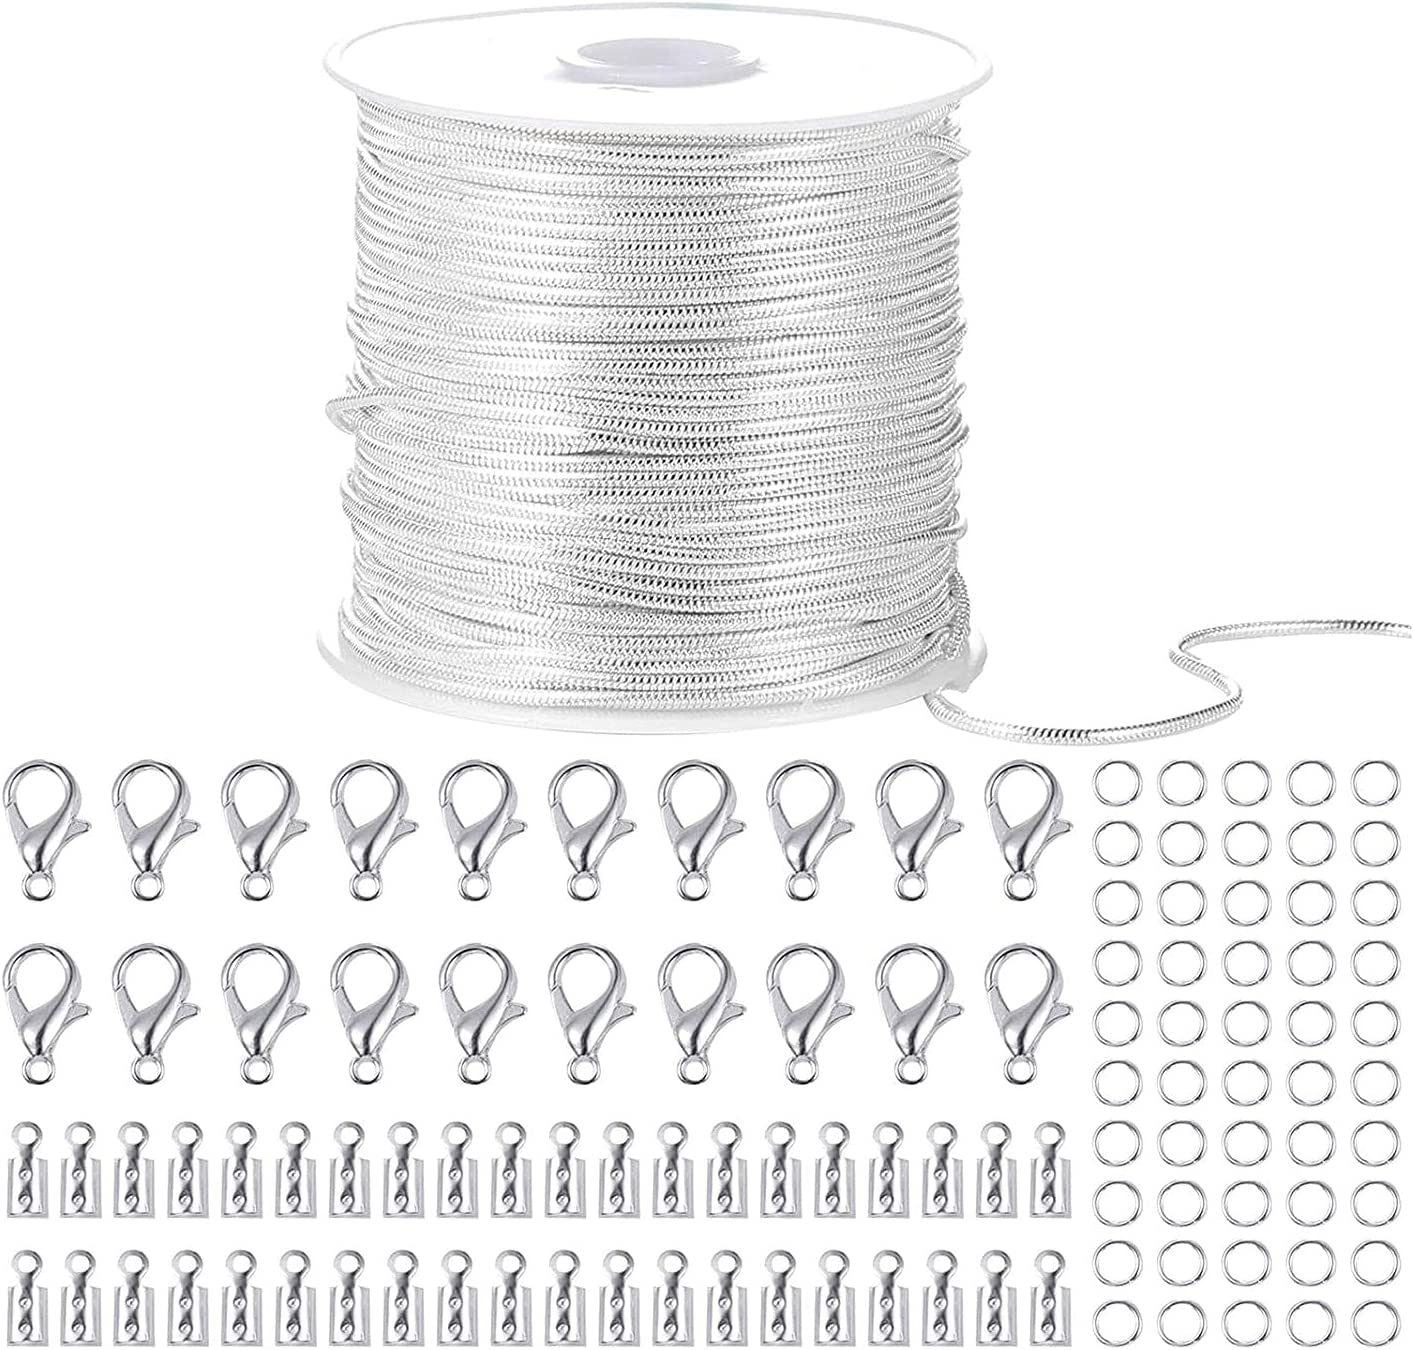 Timagebreze 33 Feet Genuine Free Shipping Snake Chains 5 popular Link Lobste 20 Chain Cable with